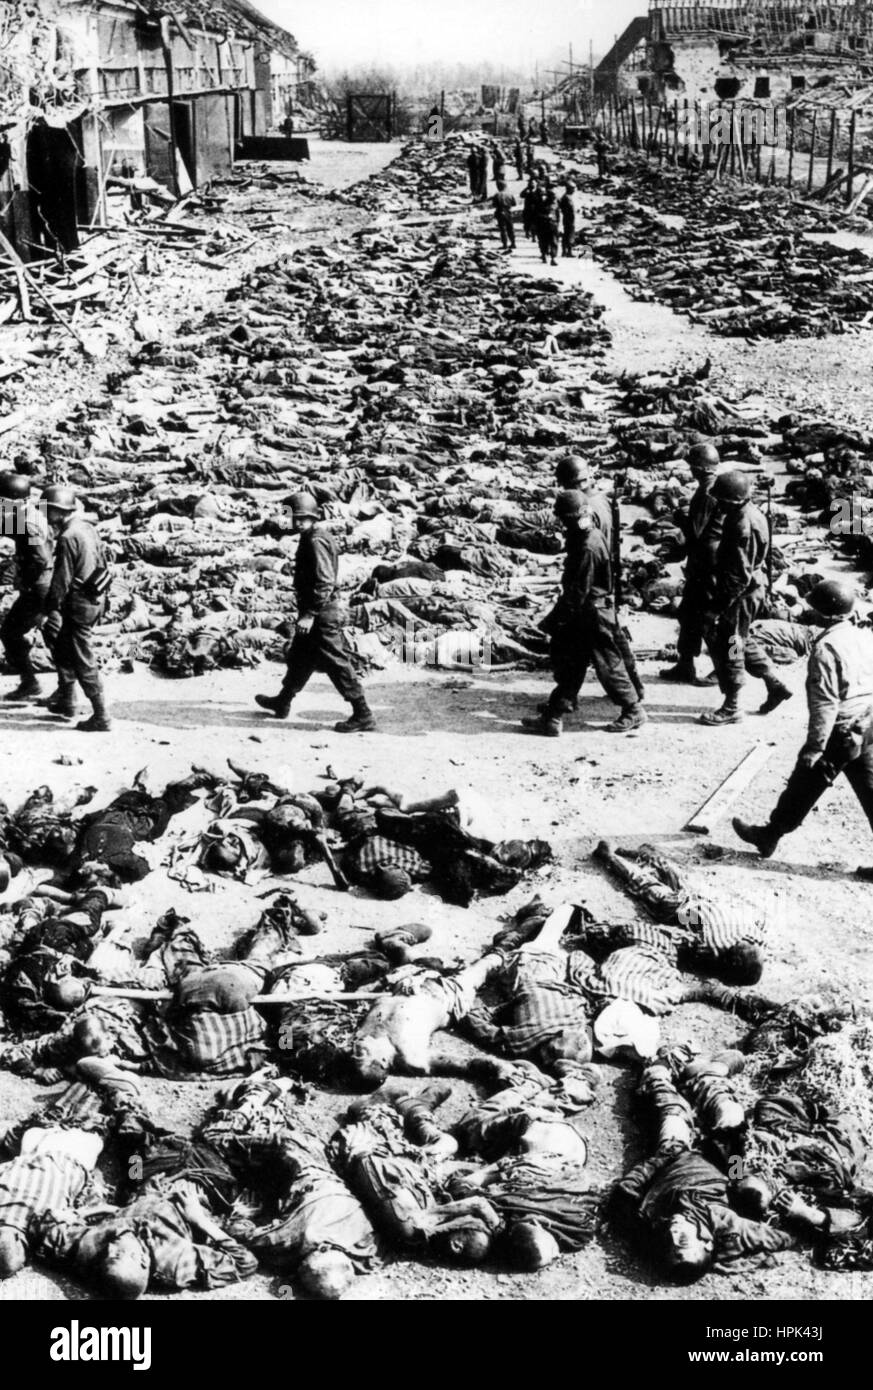 AUSCHWITZ CONCENTRATION CAMP. American soldiers passing rows of corpses after the camp was liberated om 27 January - Stock Image